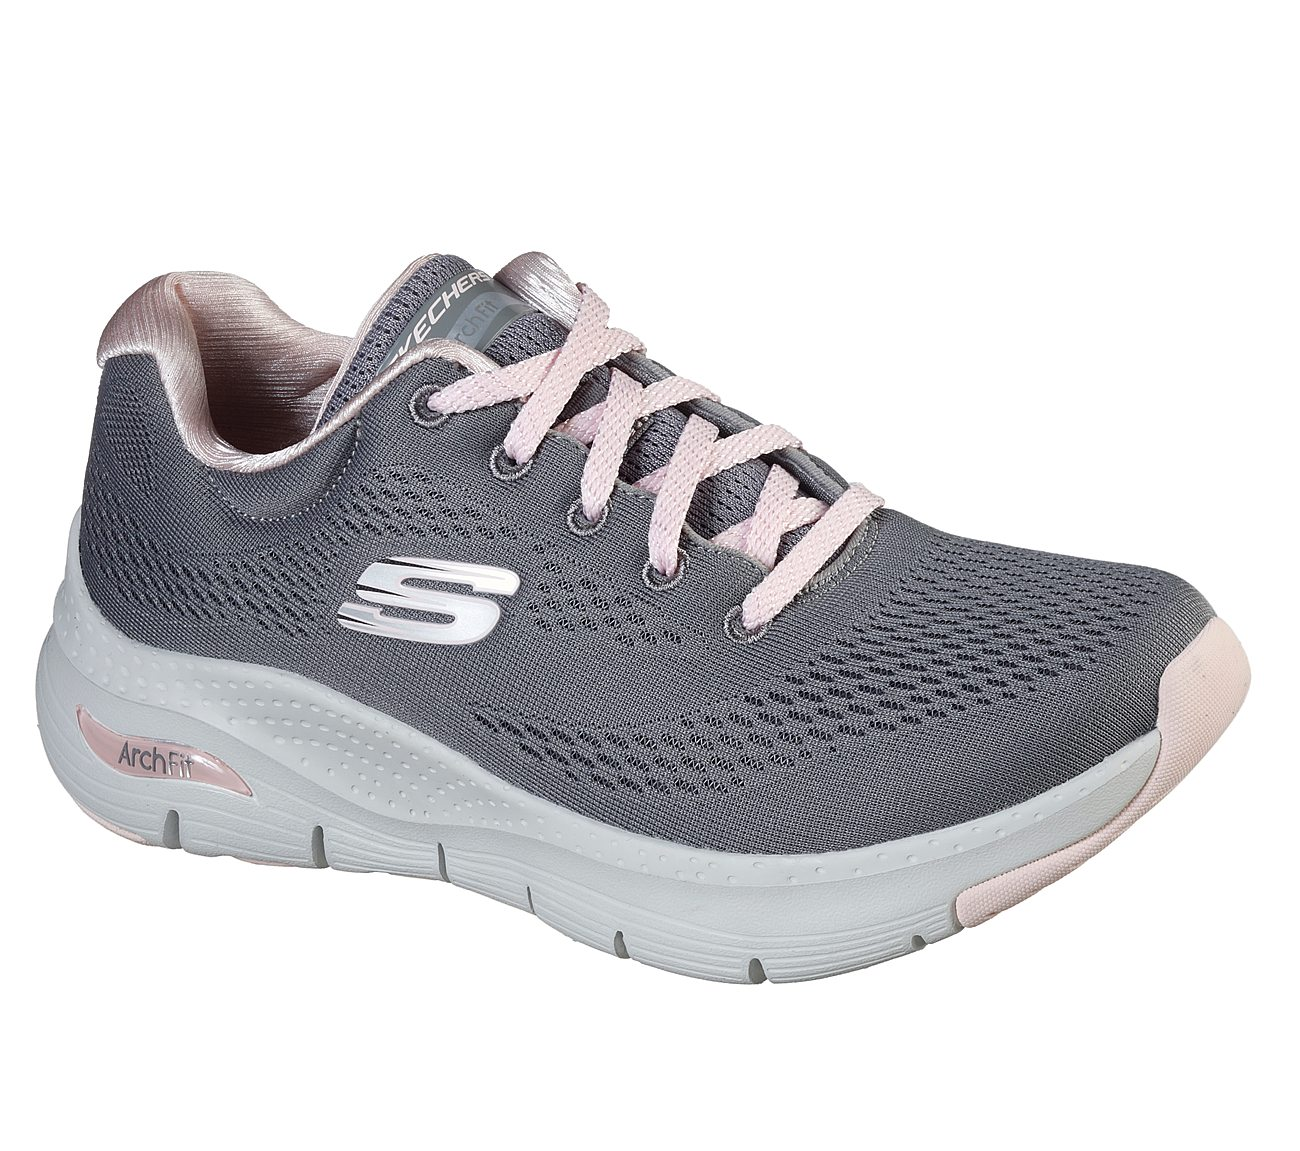 DEPORTIVO SKECHERS Arch Fit - Sunny Outlook